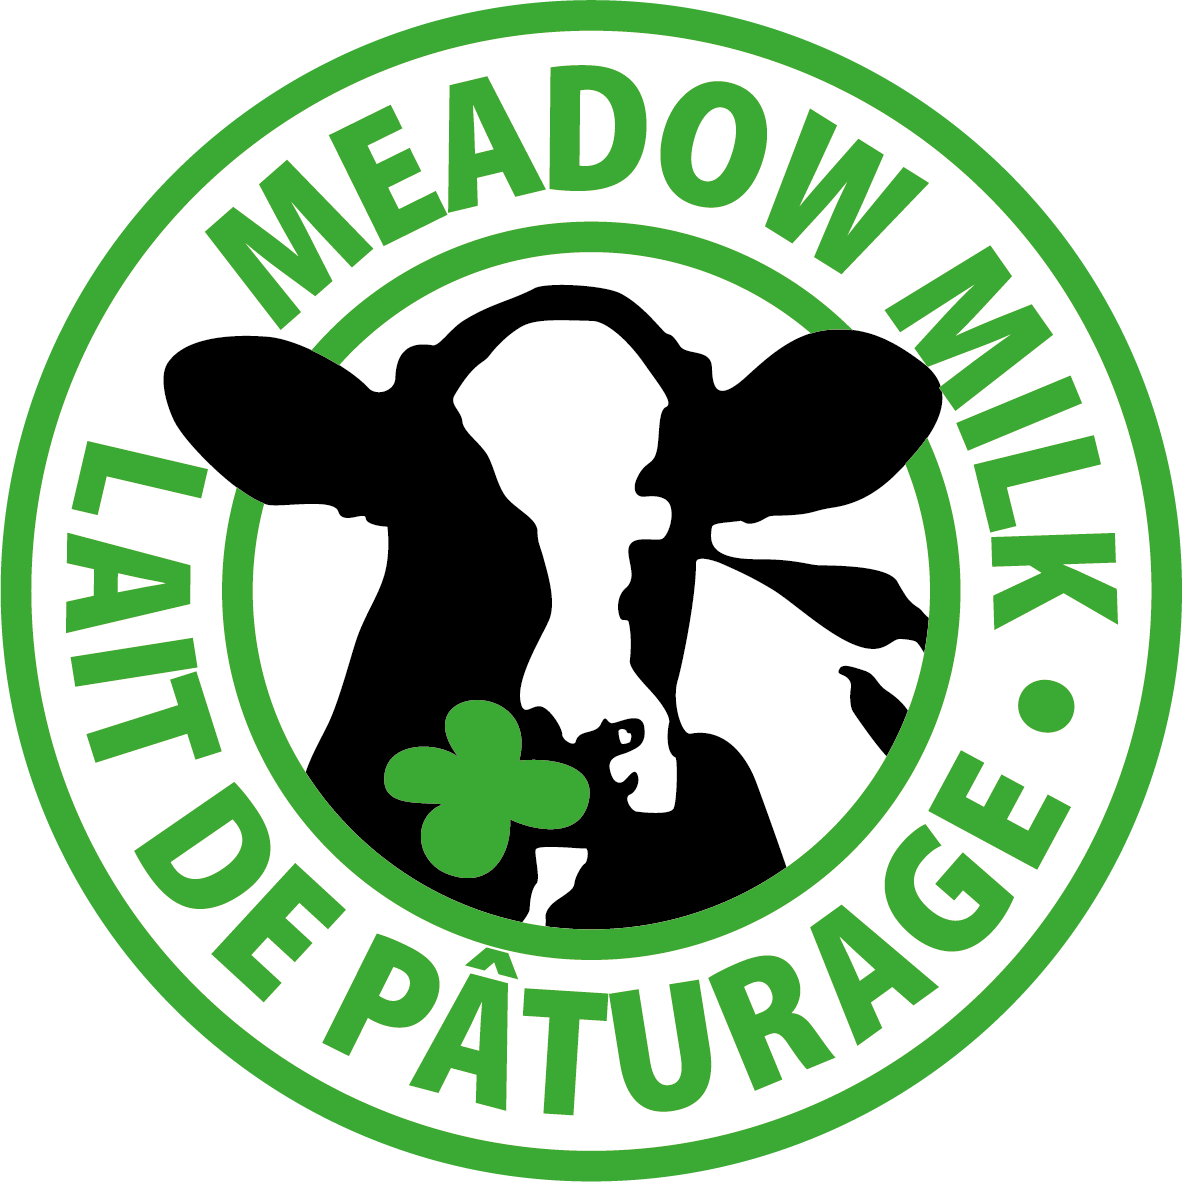 EN FR Meadow Milk Lait de Paturage